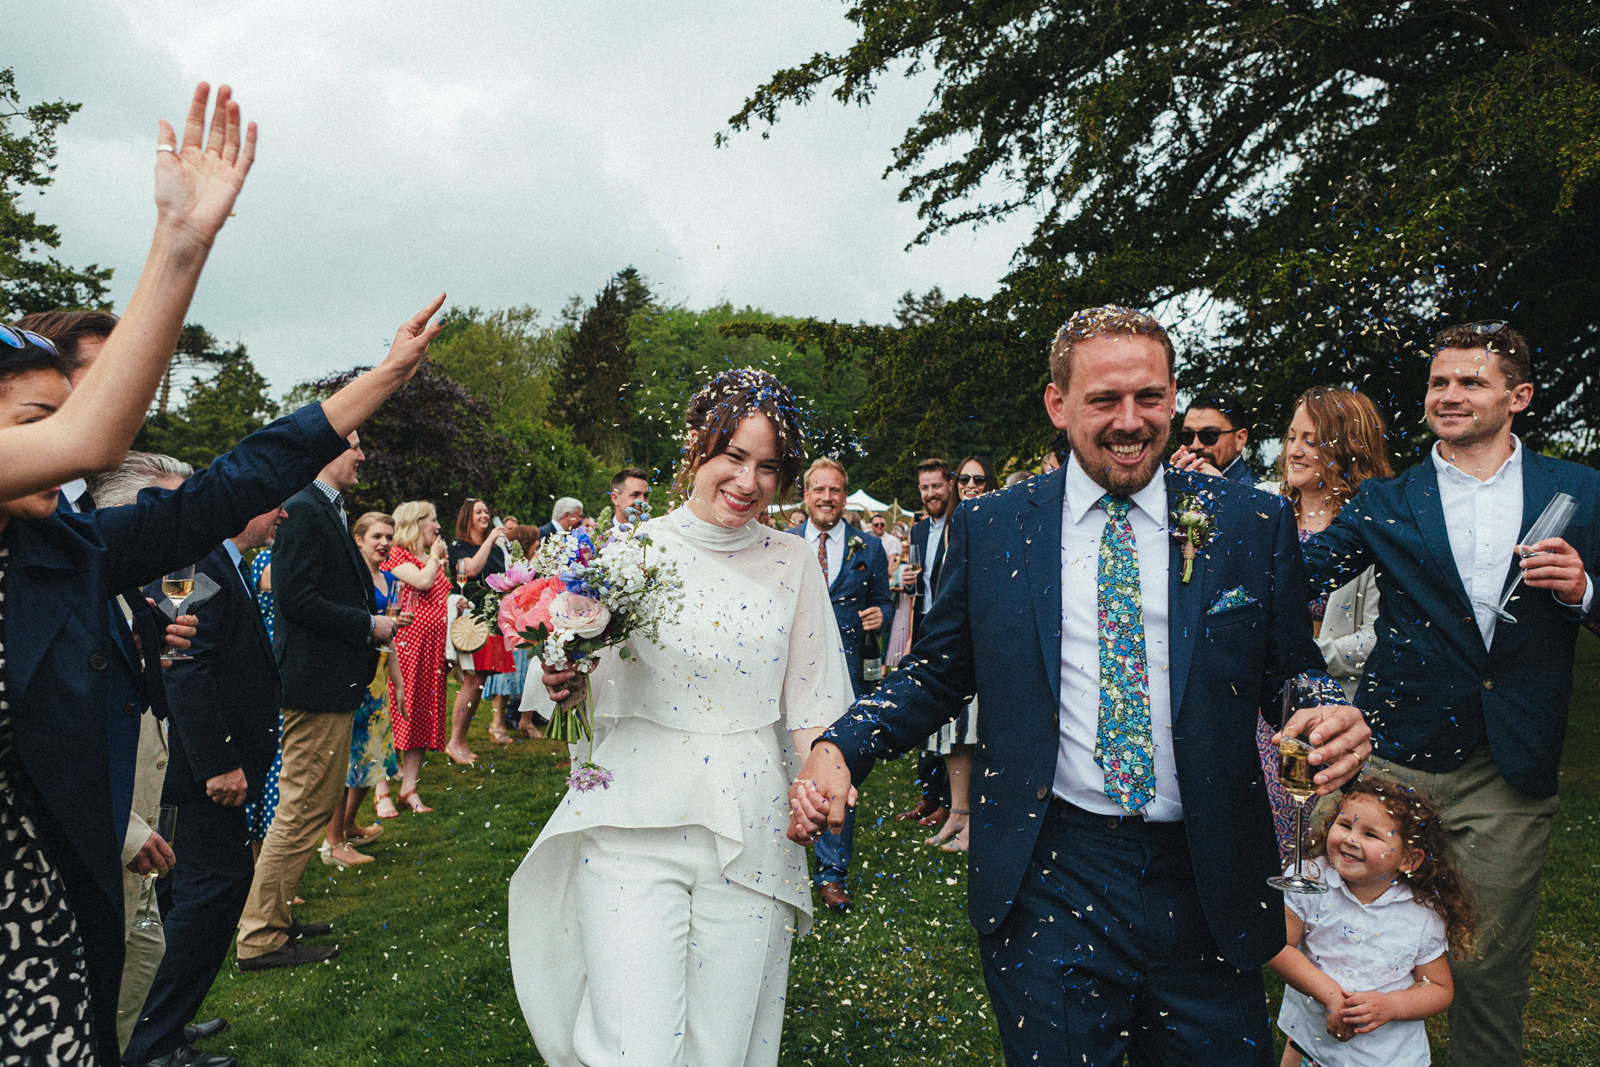 confetti, newlyweds, confetti line, outdoor confetti, documentary photography, wedding guests, green wedding, eco wedding, sharpham gardens wedding photography, outdoor wedding at sharpham house, garden wedding, garden wedding at sharpham house, spring wedding, wedding at sharpham, sharpham house, sharpham gardens, wedding photography, devon wedding, wedding in devon, wedding at sharpham house, devon wedding photographer